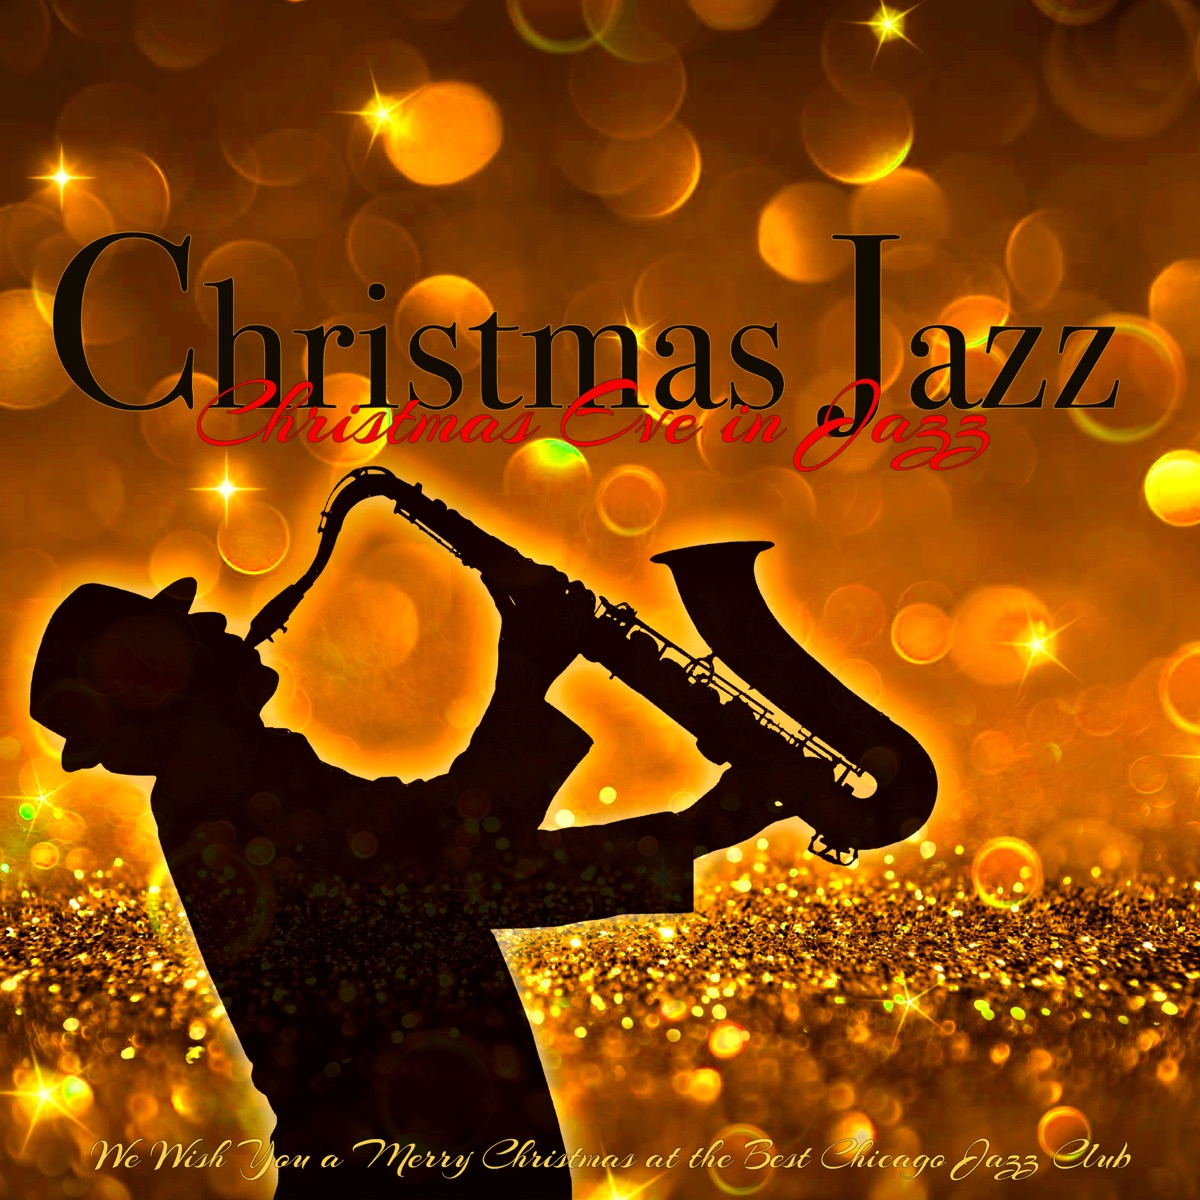 Christmas Jazz Music.Christmas Jazz Christmas Eve In Jazz We Wish You A Merry